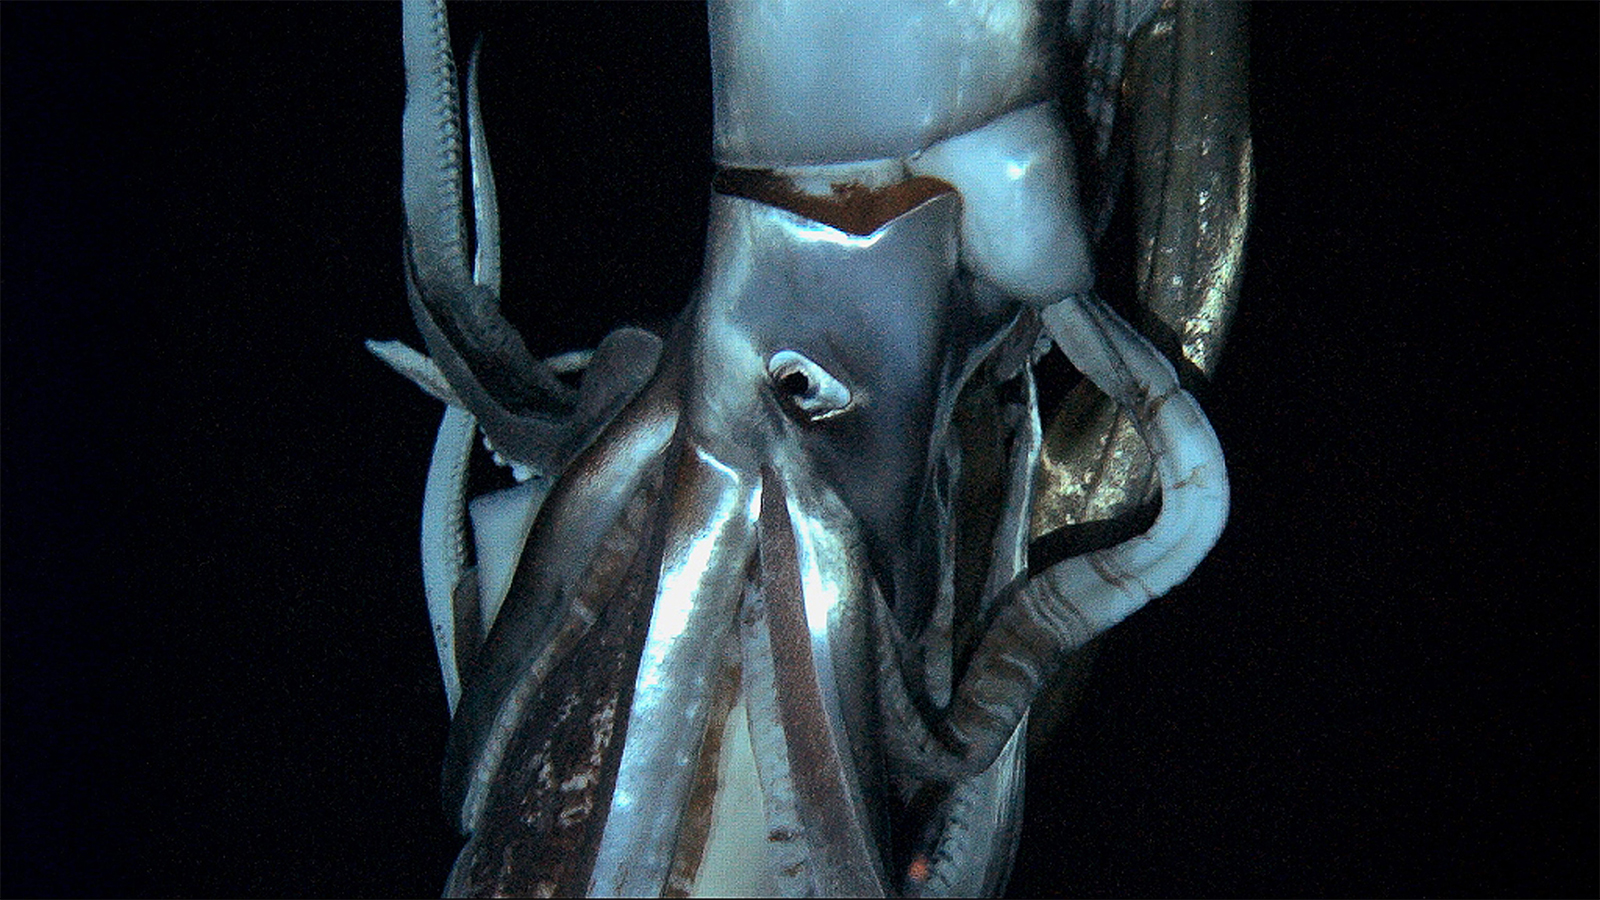 Architeuthis Giant Squid